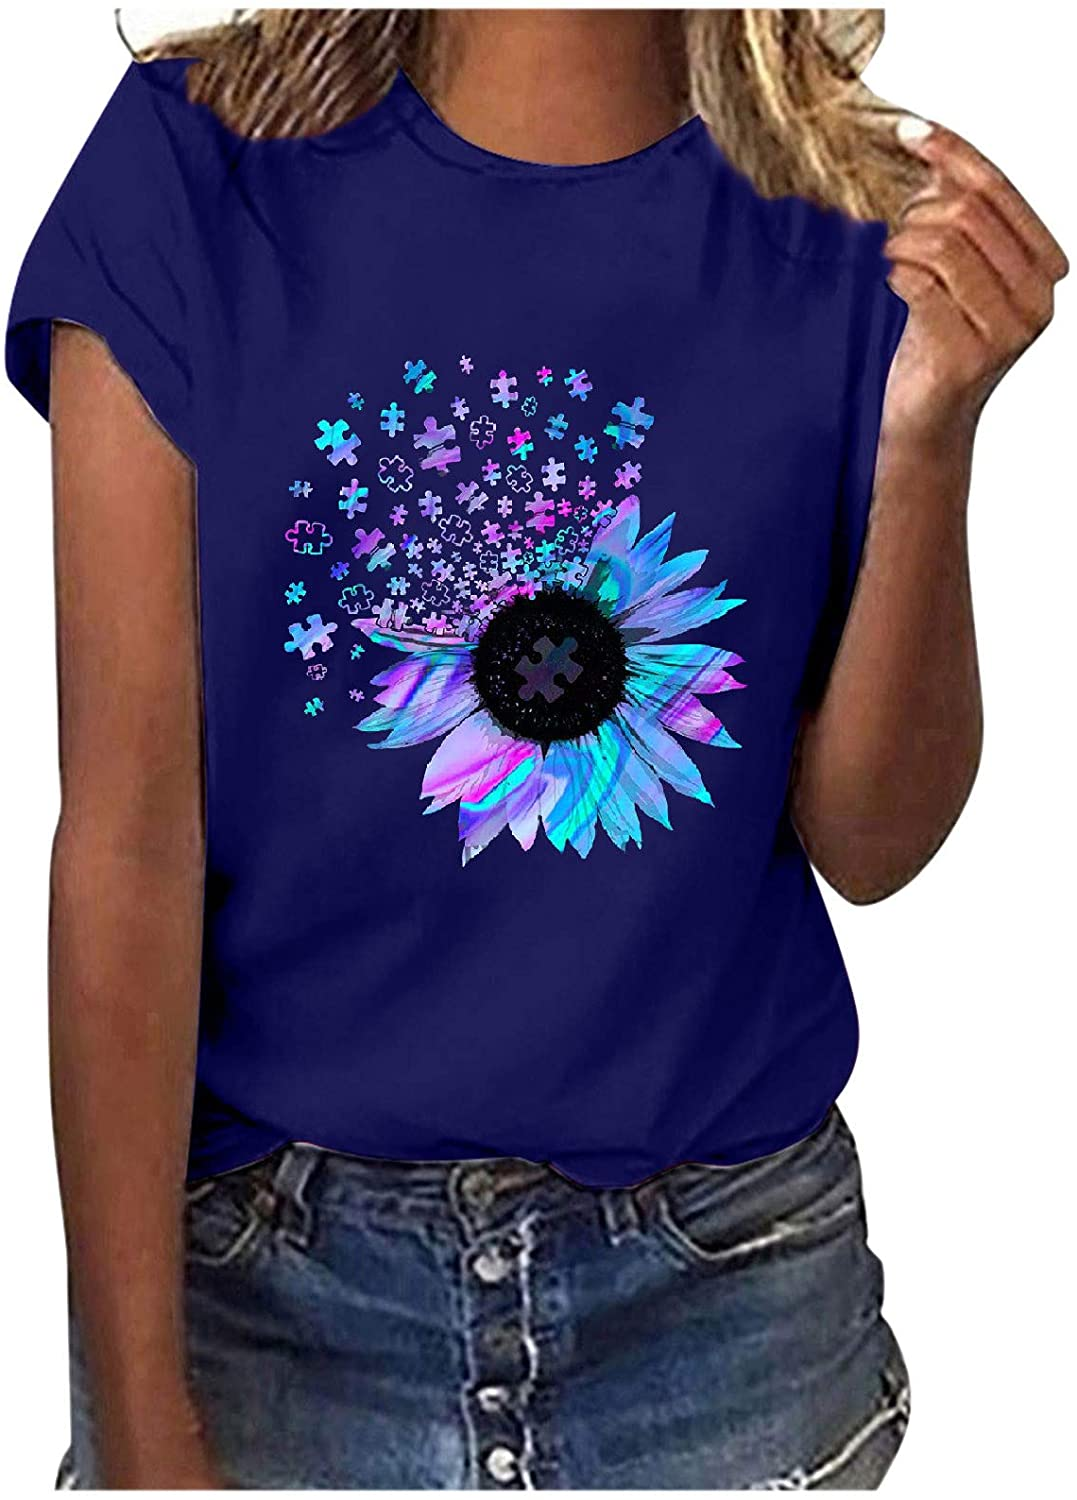 Women Tops Plus Size Summer Casual Short Sleeve Sunflower Graphic Tees Workout Shirts Blouses Womens Tshirts Loose Fit